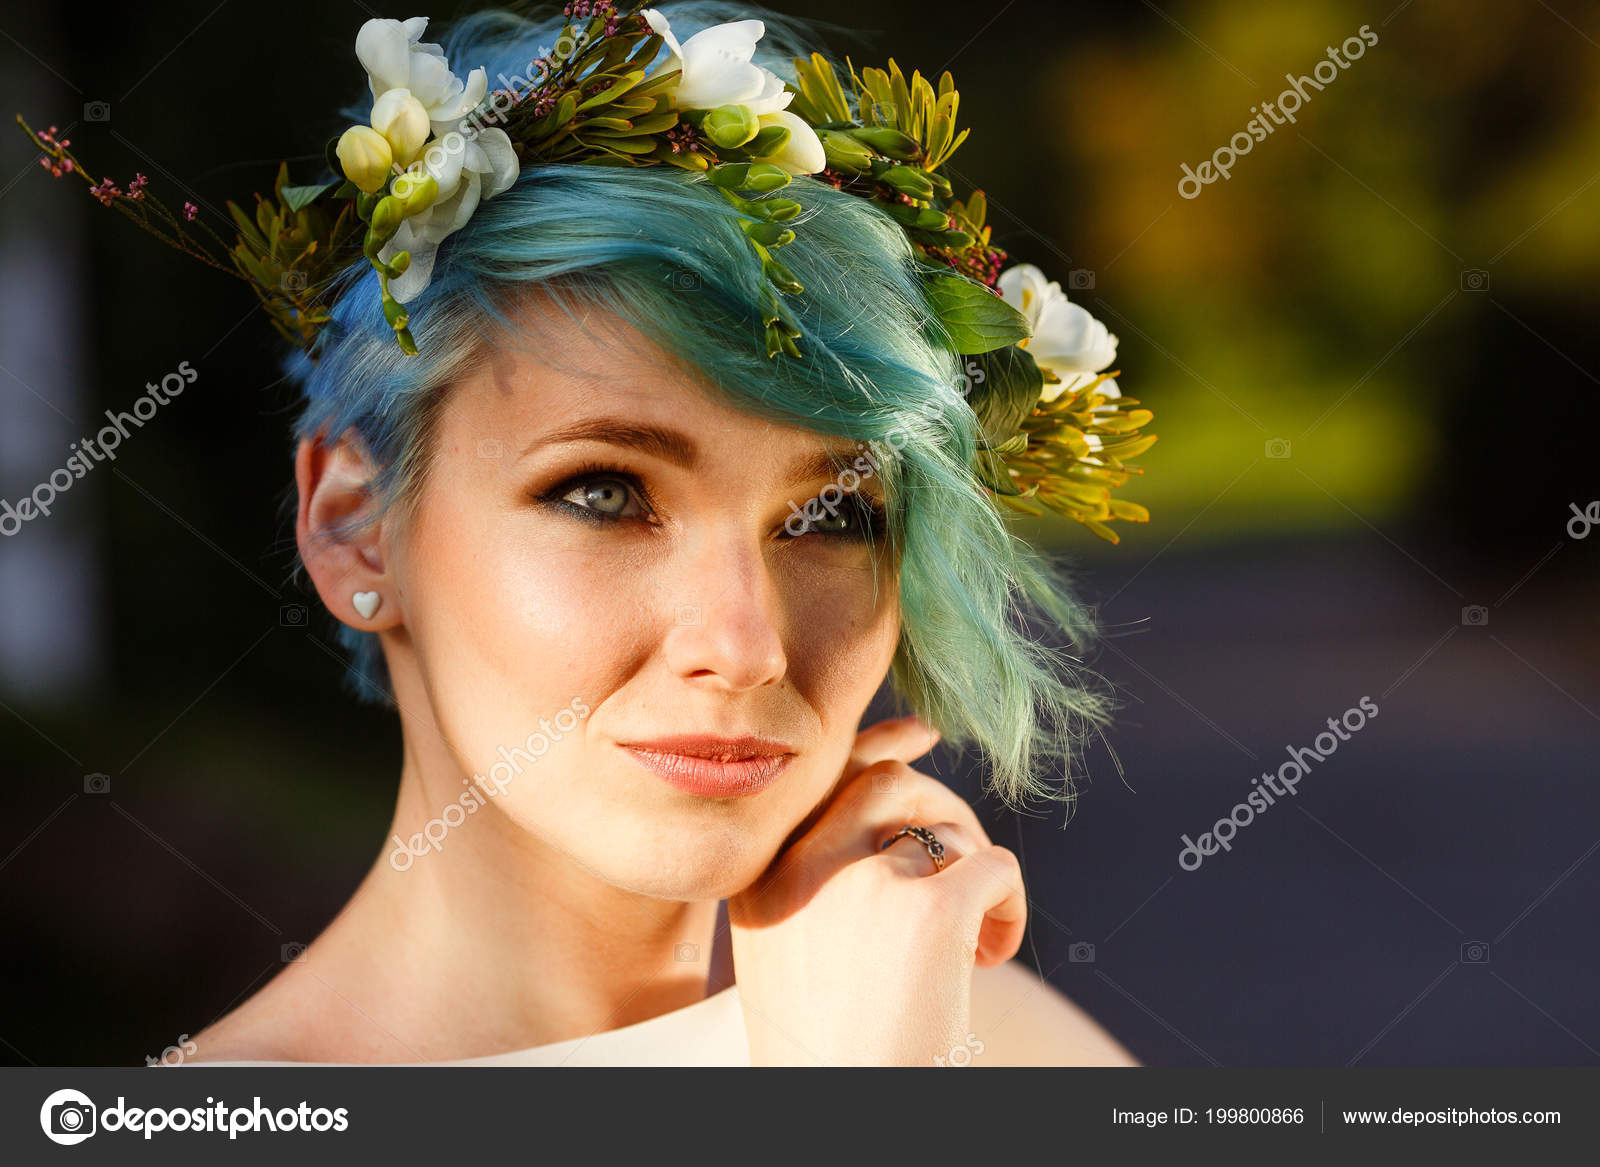 Portrait beautiful bride blue hair wreath real flowers wedding day portrait beautiful bride blue hair wreath real flowers wedding day stock photo izmirmasajfo